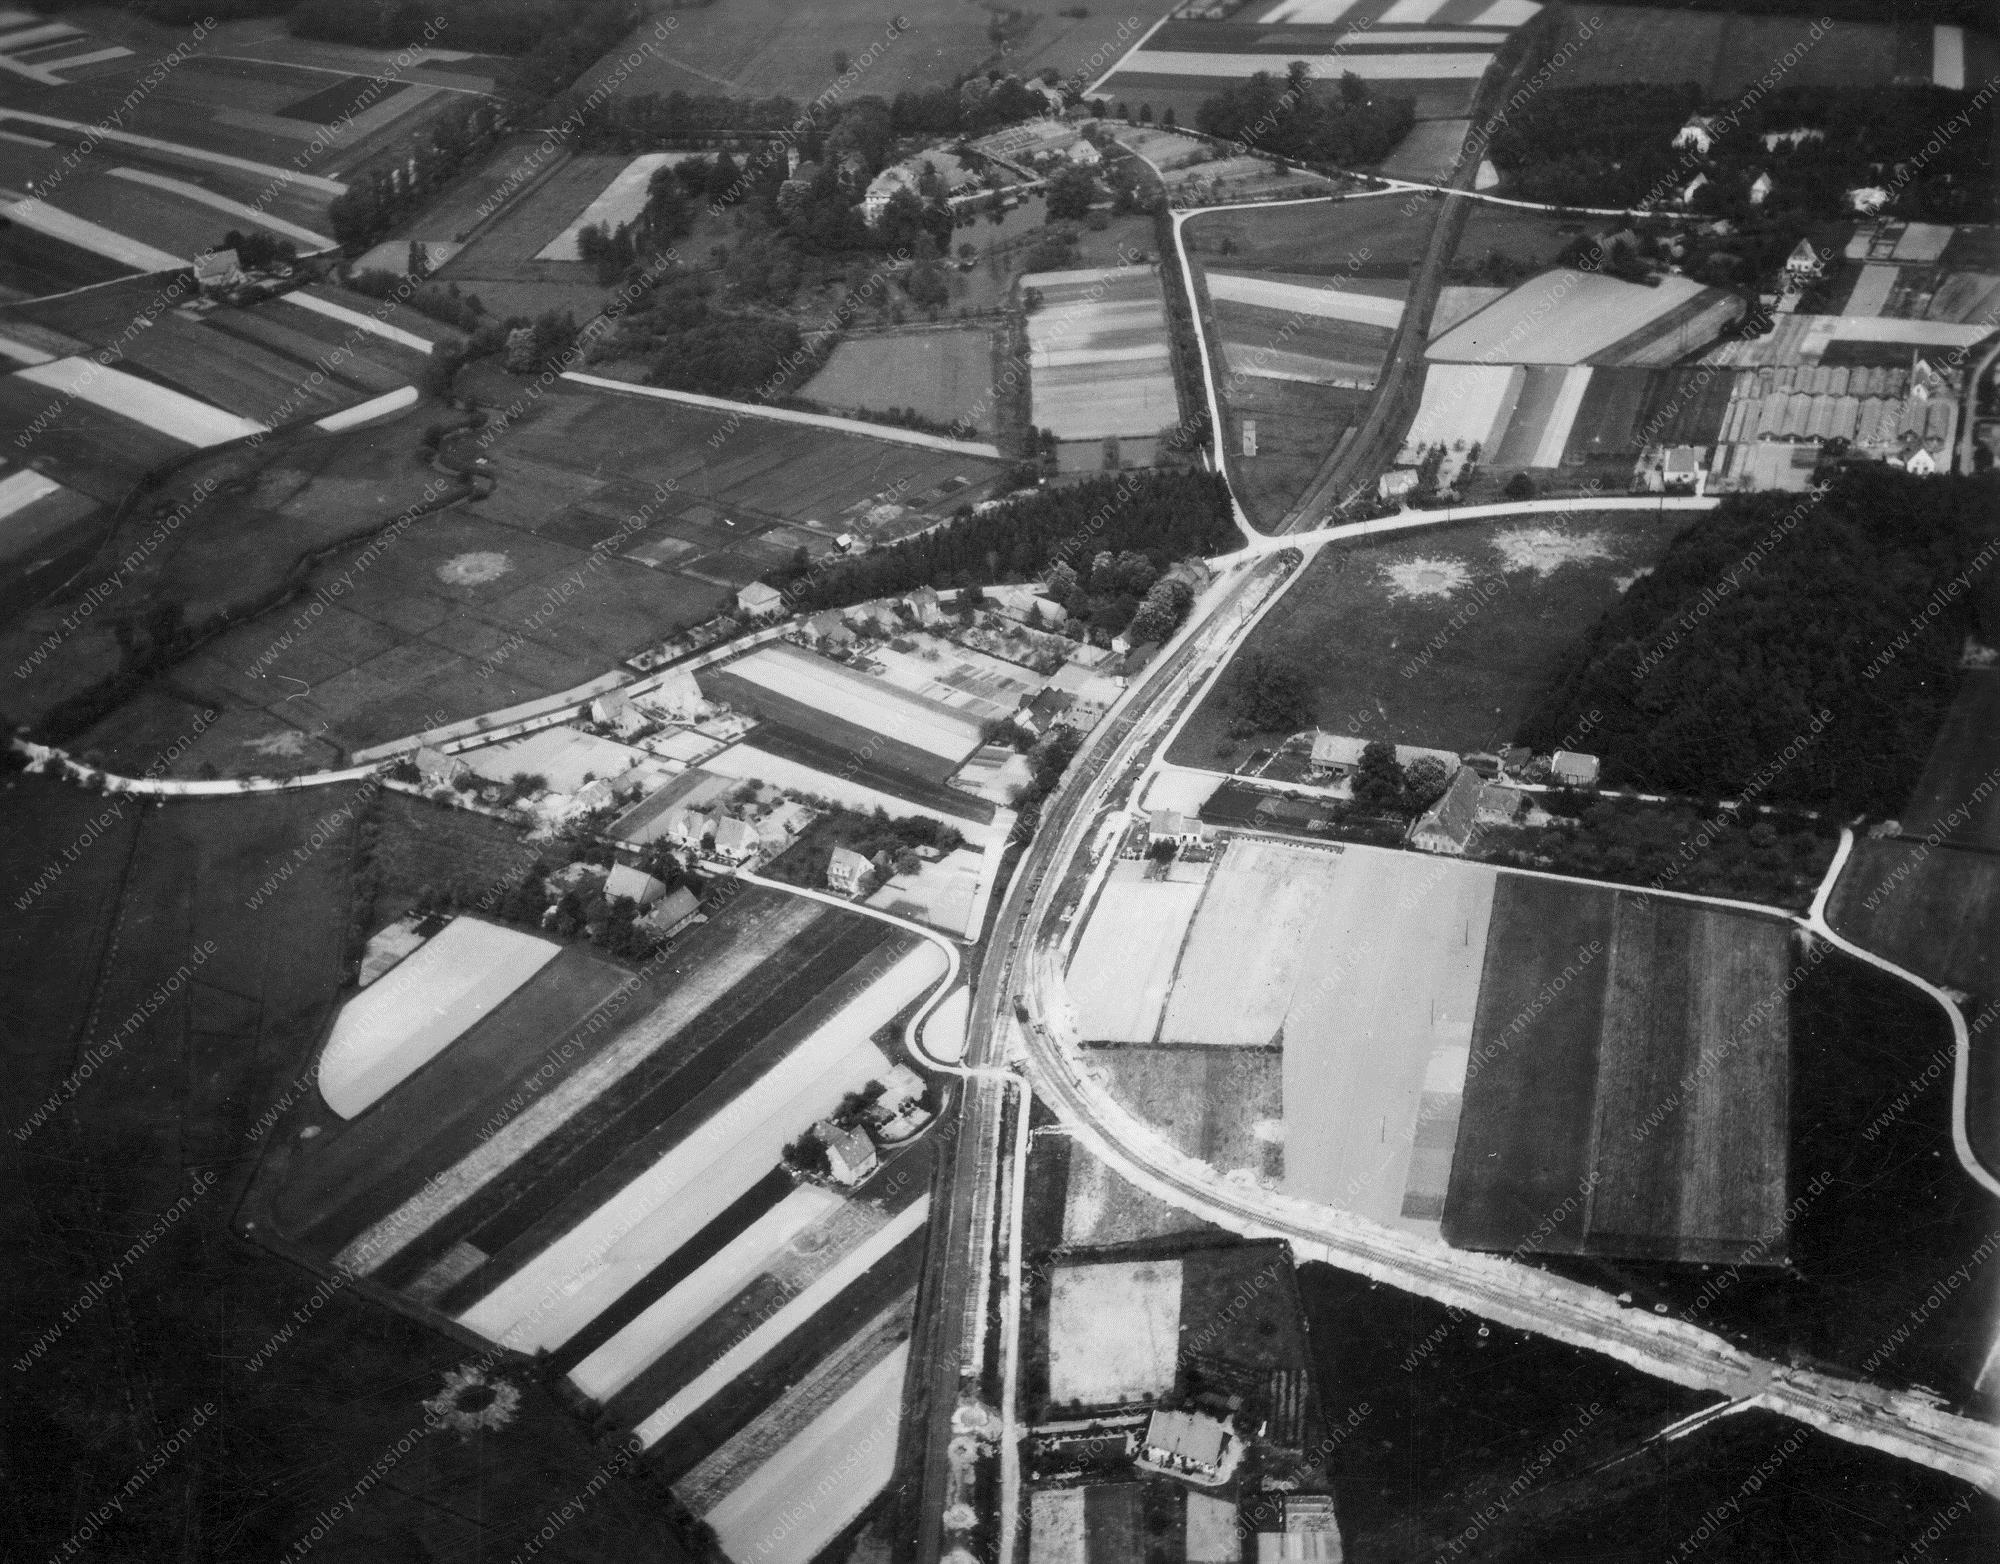 Osnabrueck from above: Aerial view after Allied air raids in World War II